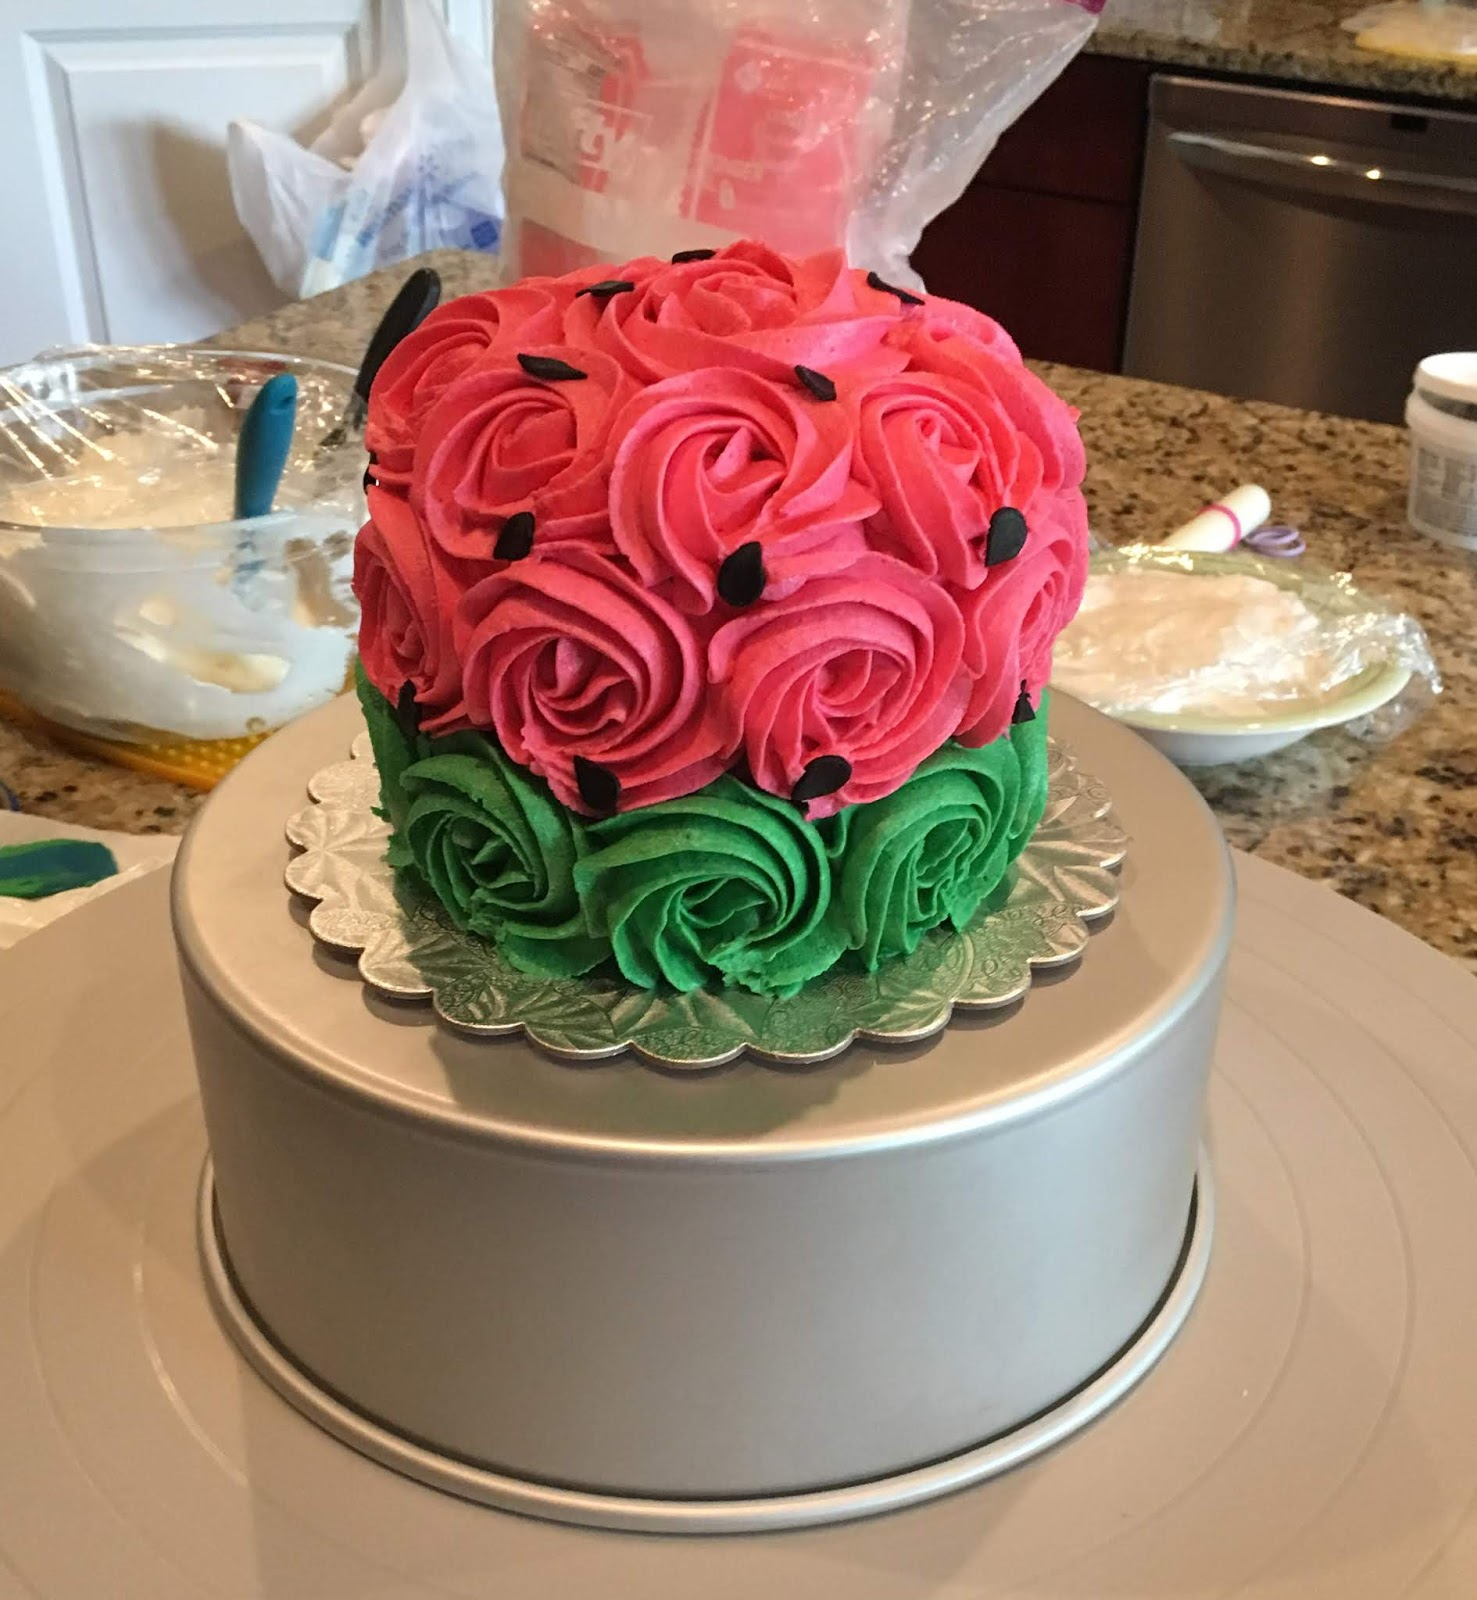 The Bake More One In A Melon Watermelon Birthday Cake Tutorial